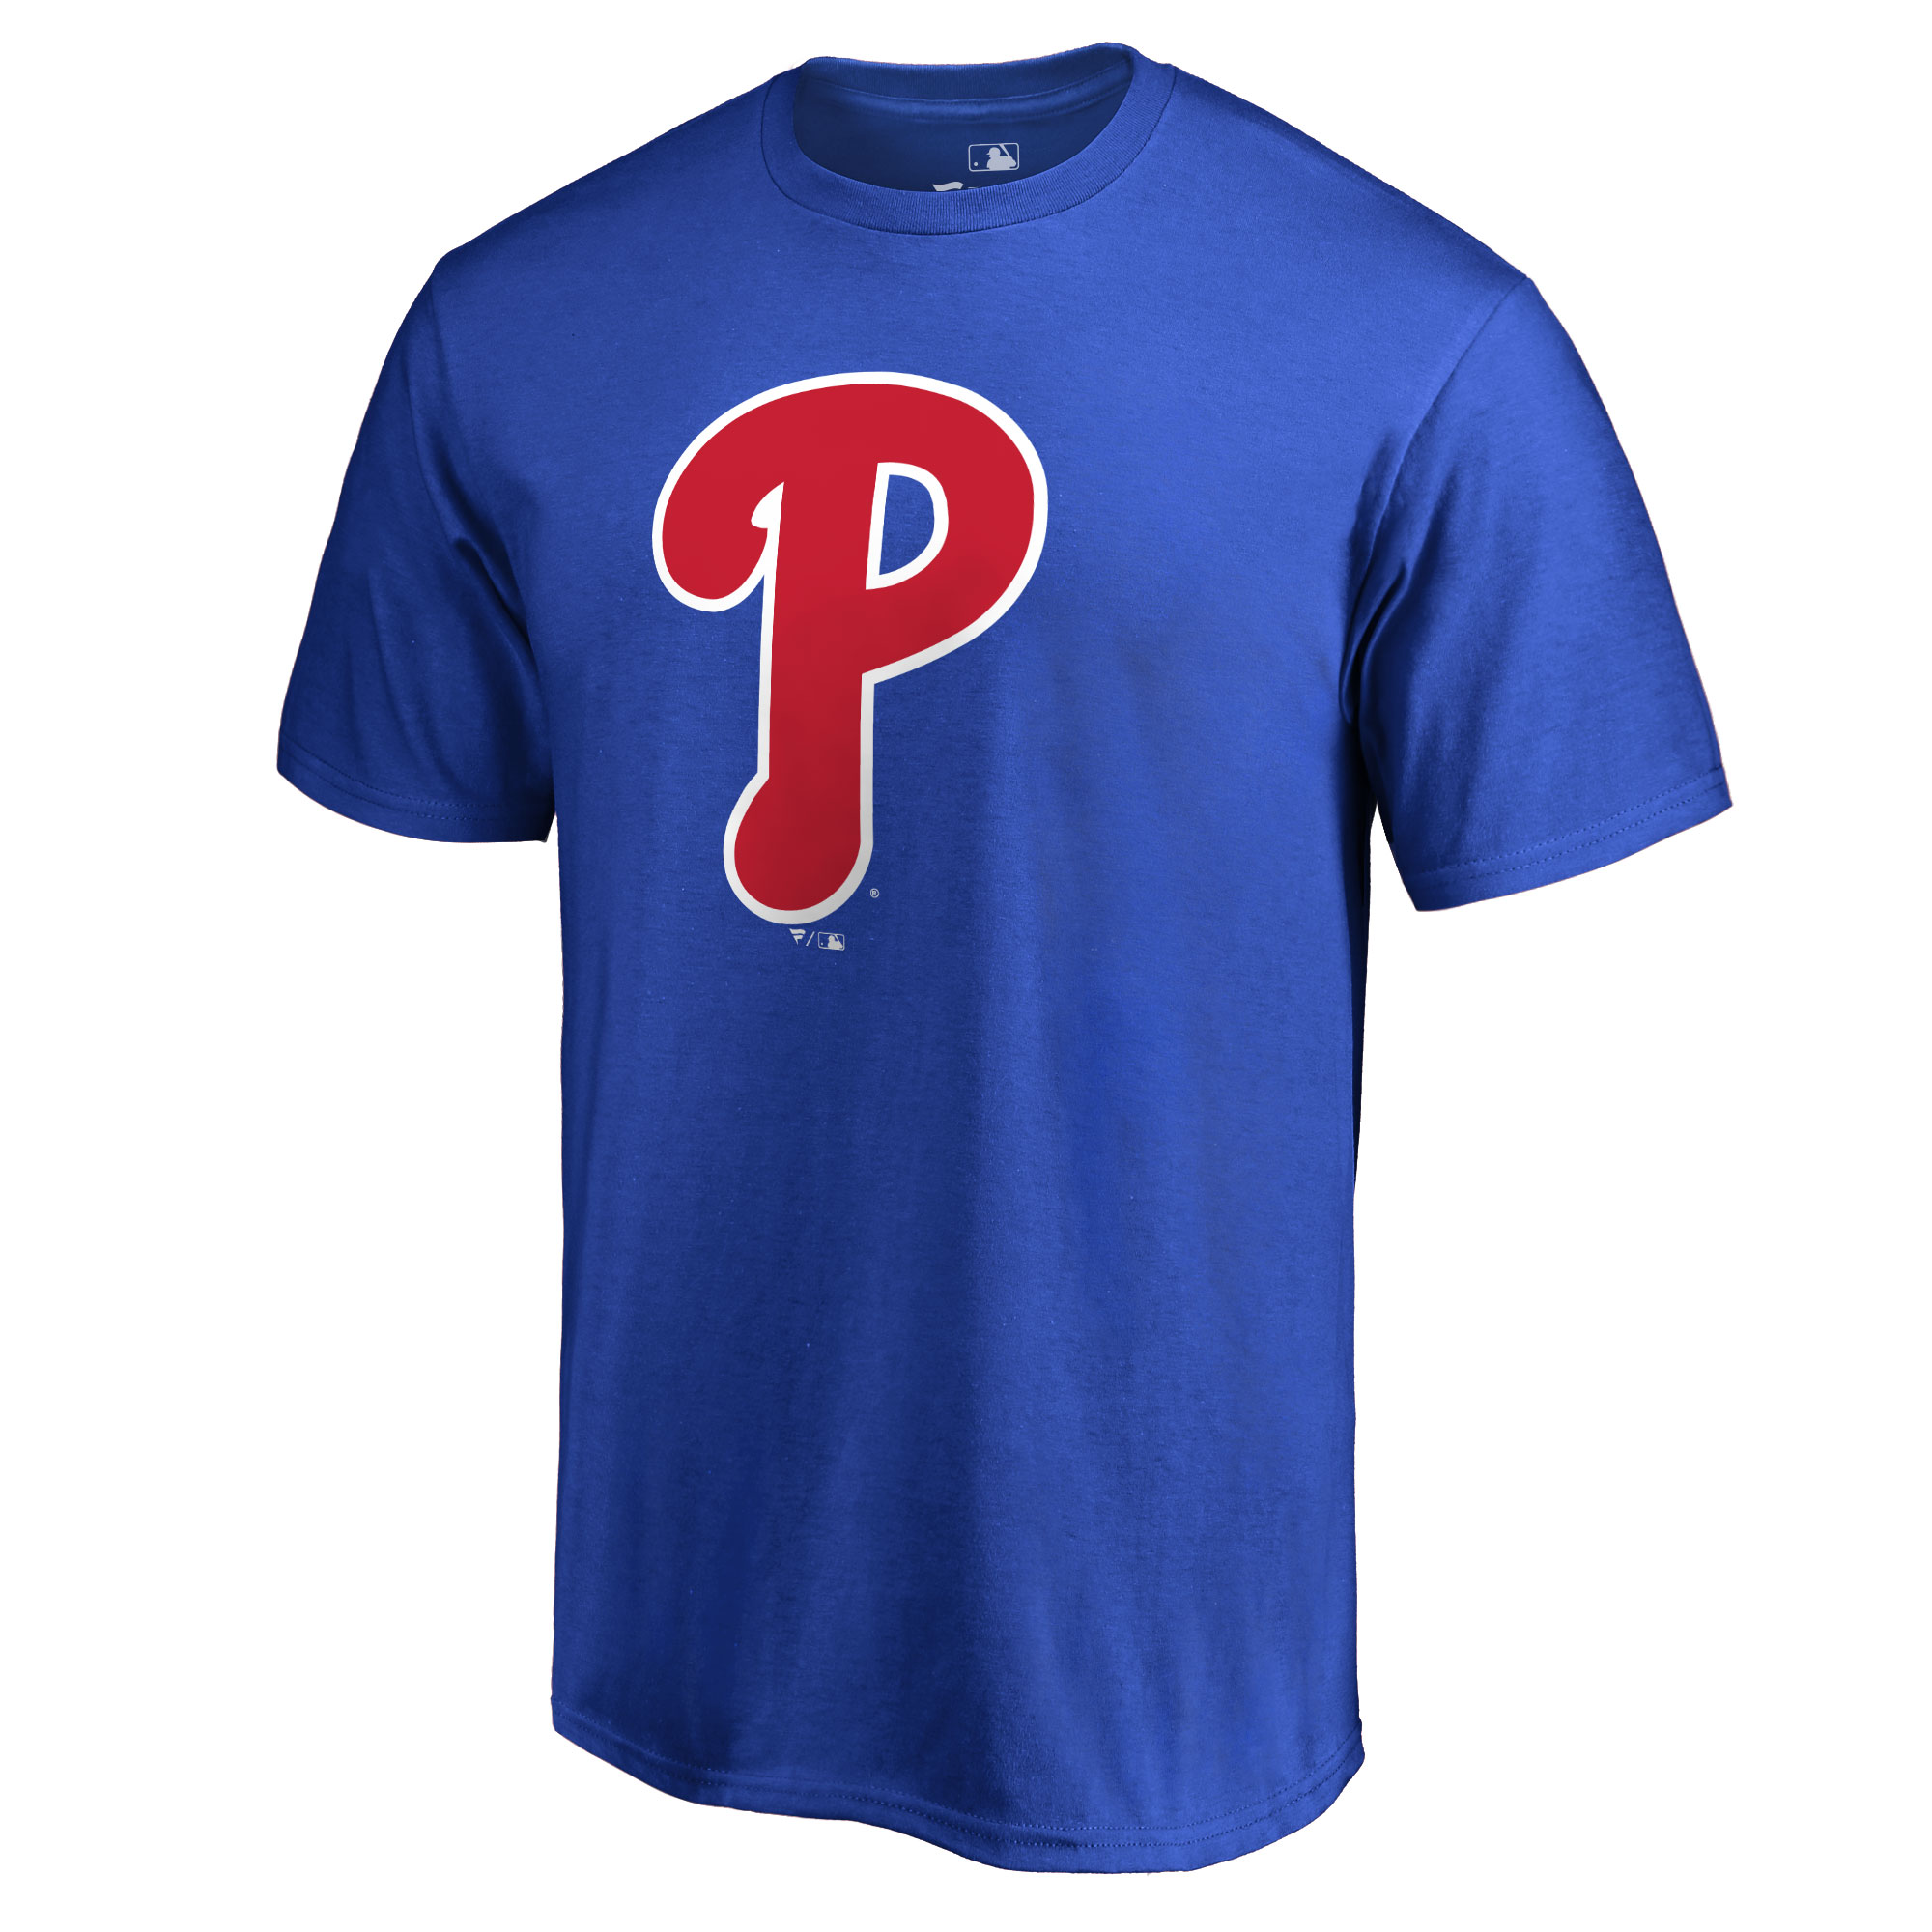 Philadelphia Phillies Secondary Color Primary Logo T-Shirt - Royal